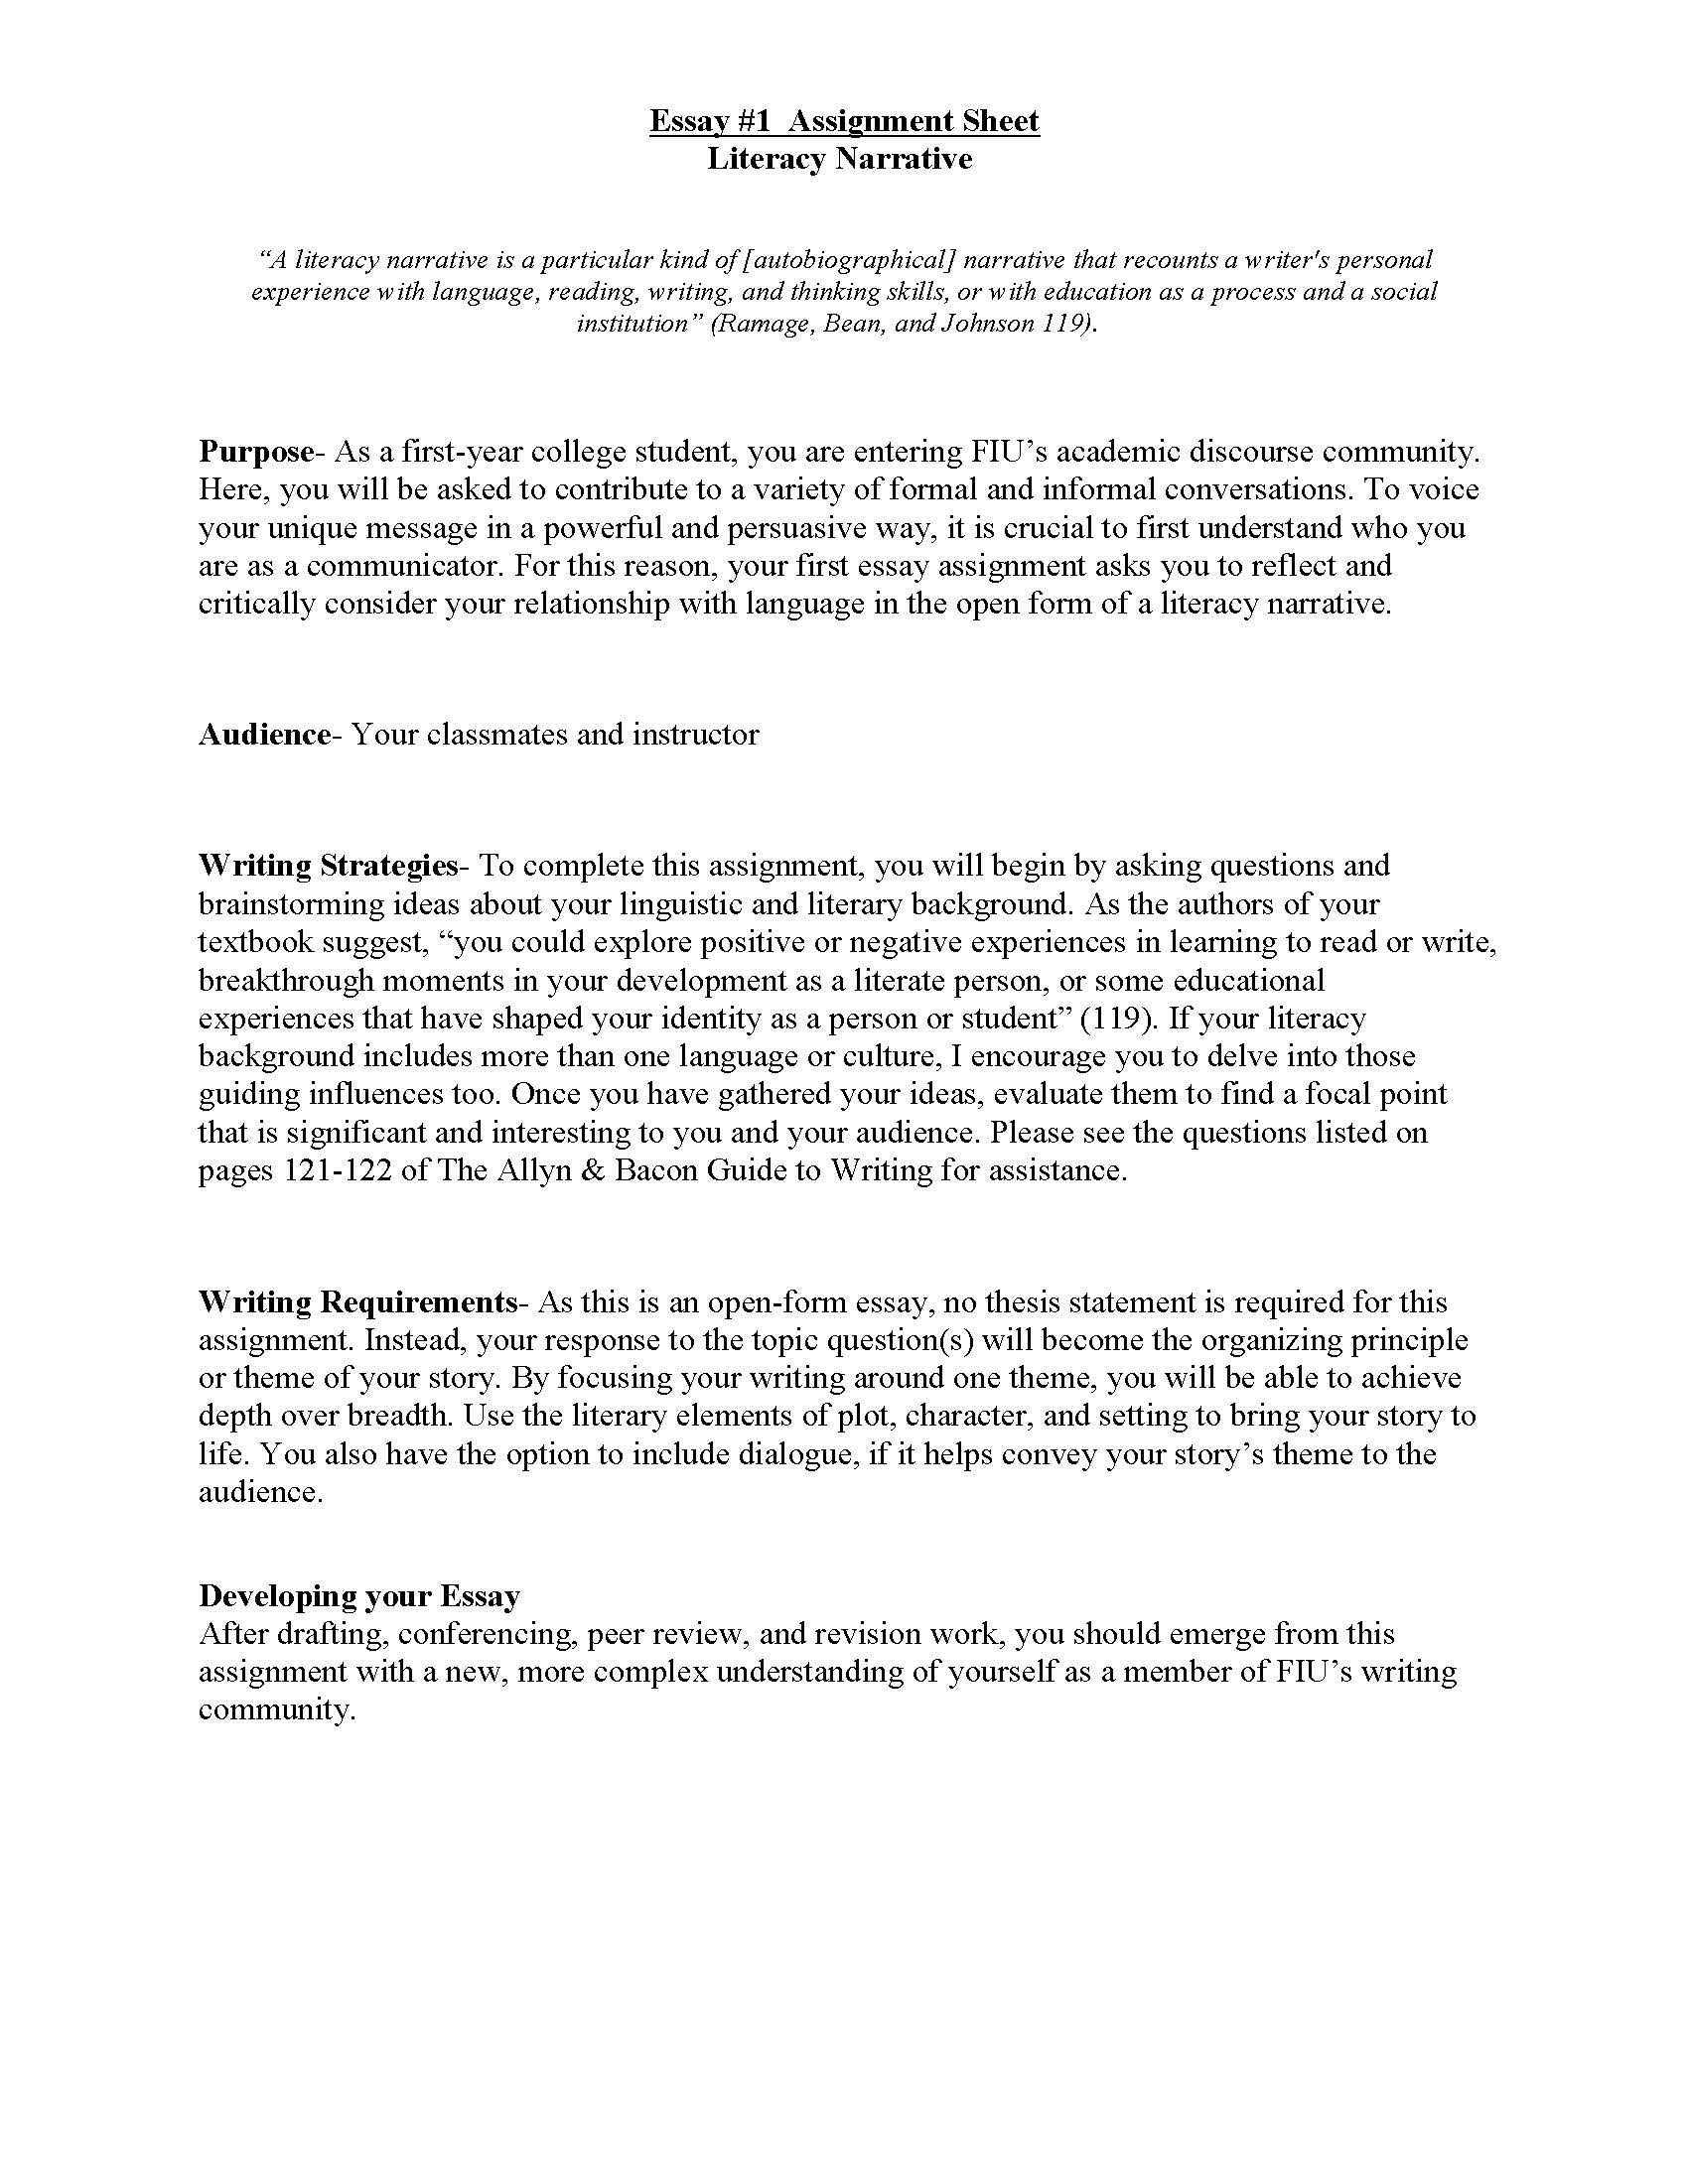 020 Narrative Essay Sample Example Literacy Unit Assignment Spring 2012 Page 1 Dreaded Questions Interesting Samples Spm Full